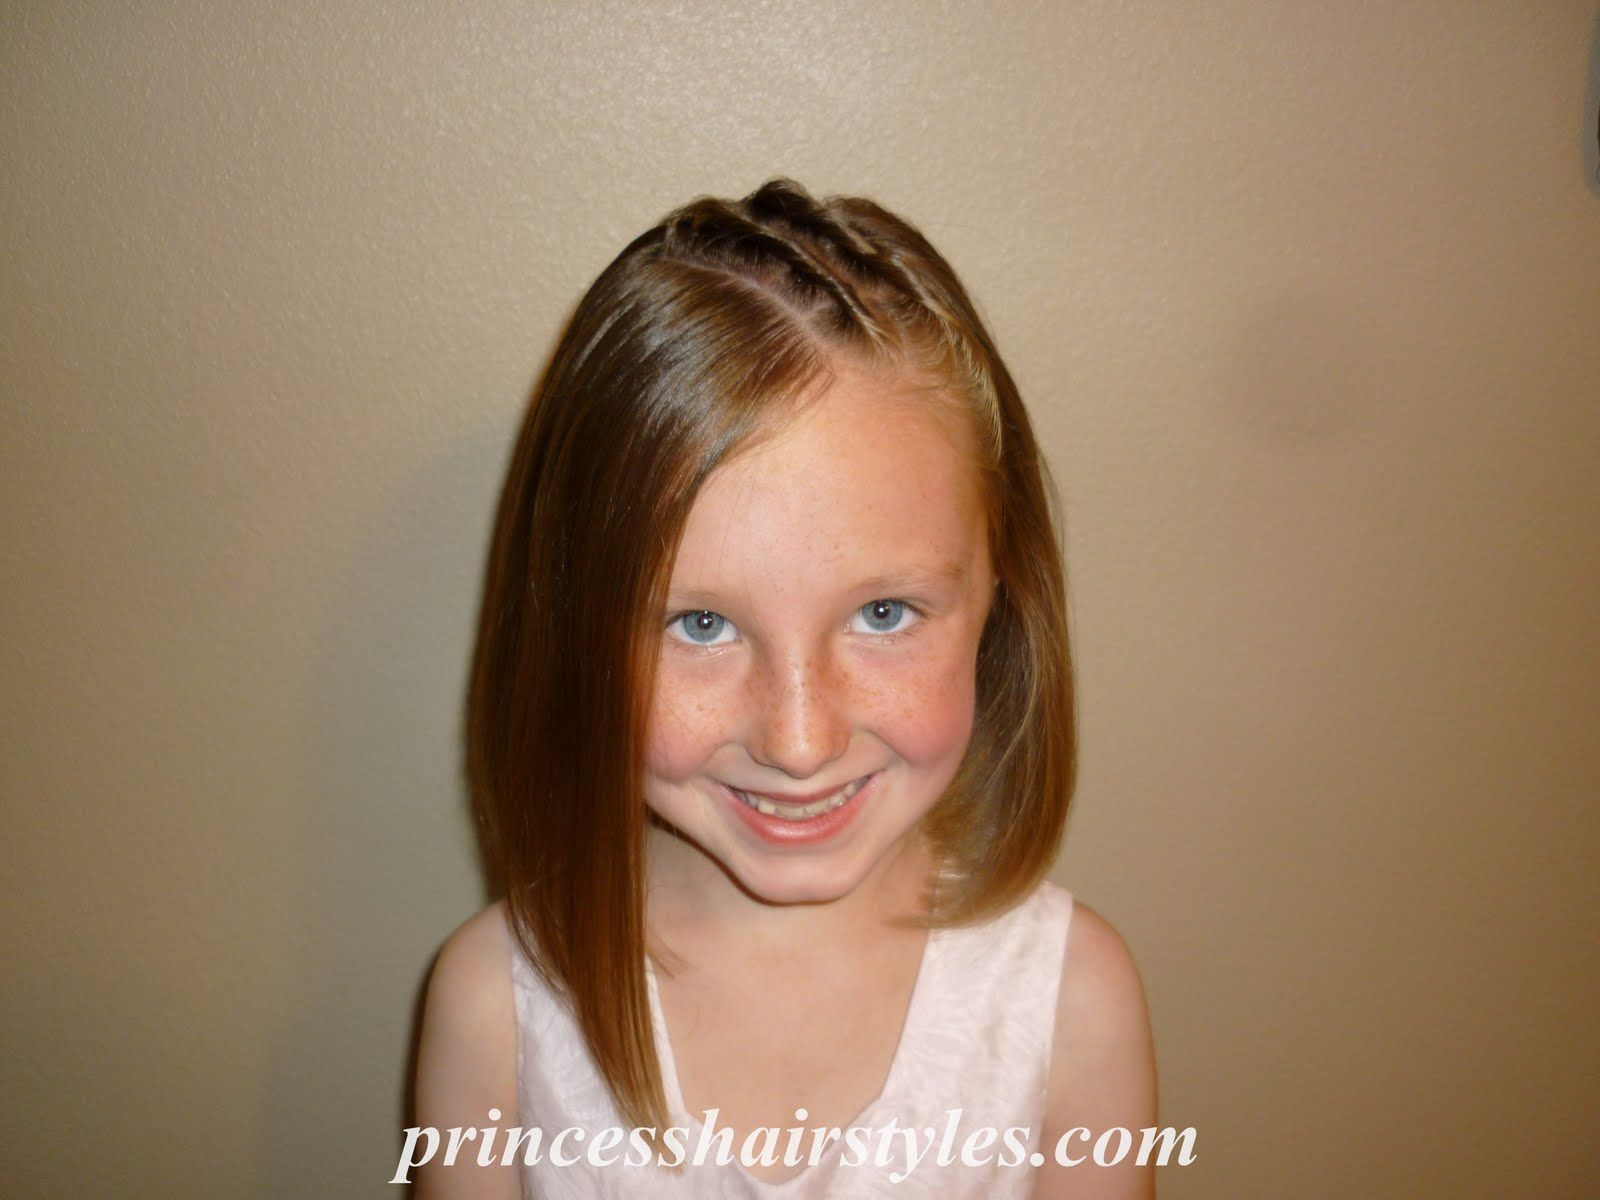 Kids hairstyles for short hair girls - A Line Haircuts For Little Girls Hairstyles For Girls Hair Styles Braiding Hairstyles Short Hairtwist Hairstyleskids